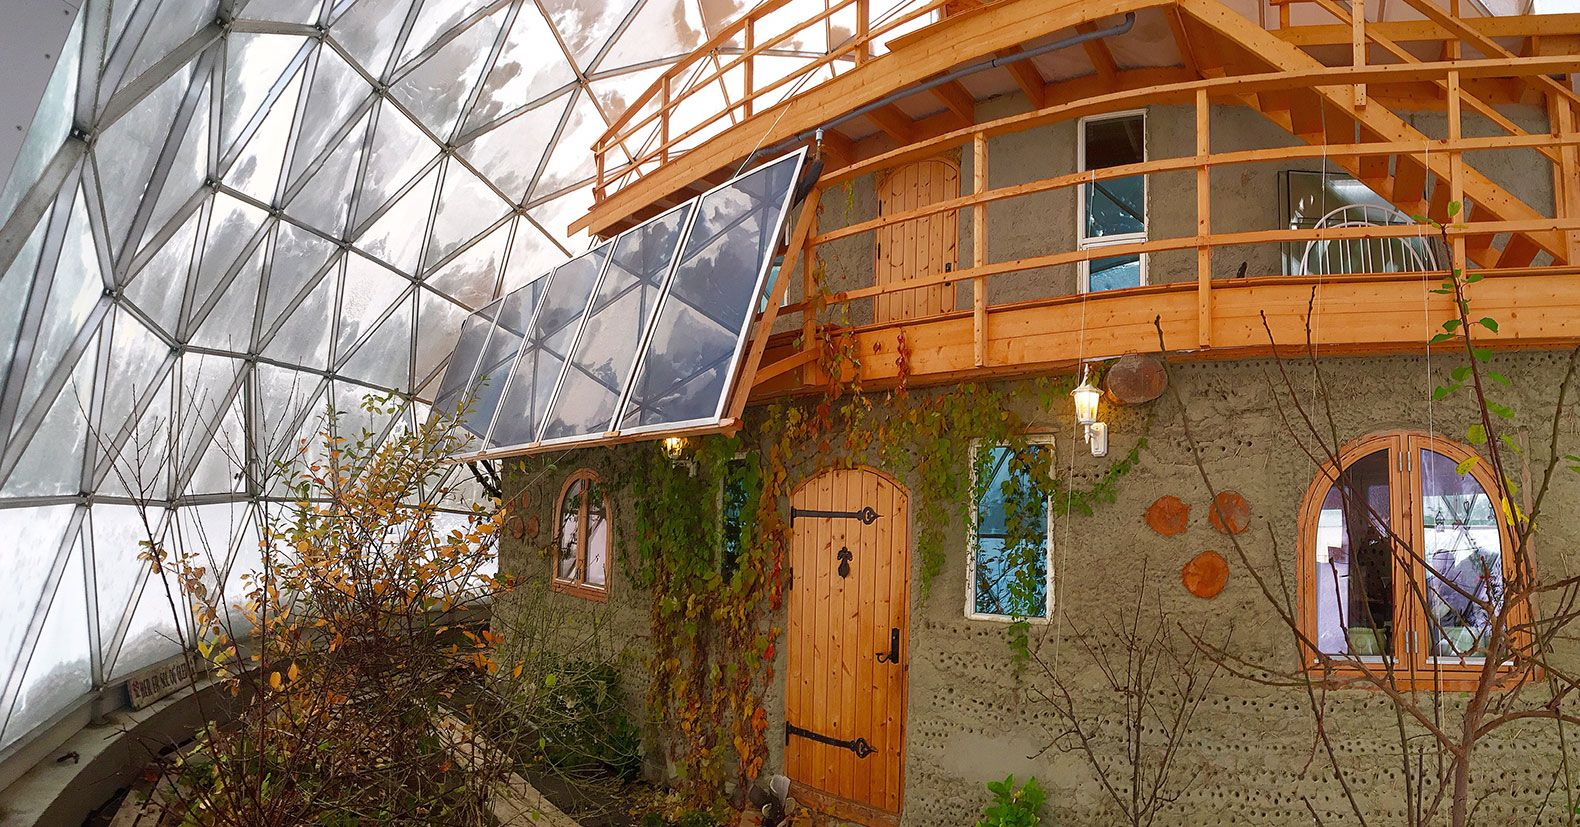 Best Kitchen Gallery: Glass Dome Home Provides Eco Friendly Shelter In The Arctic of Eco Friendly Dome Home on rachelxblog.com